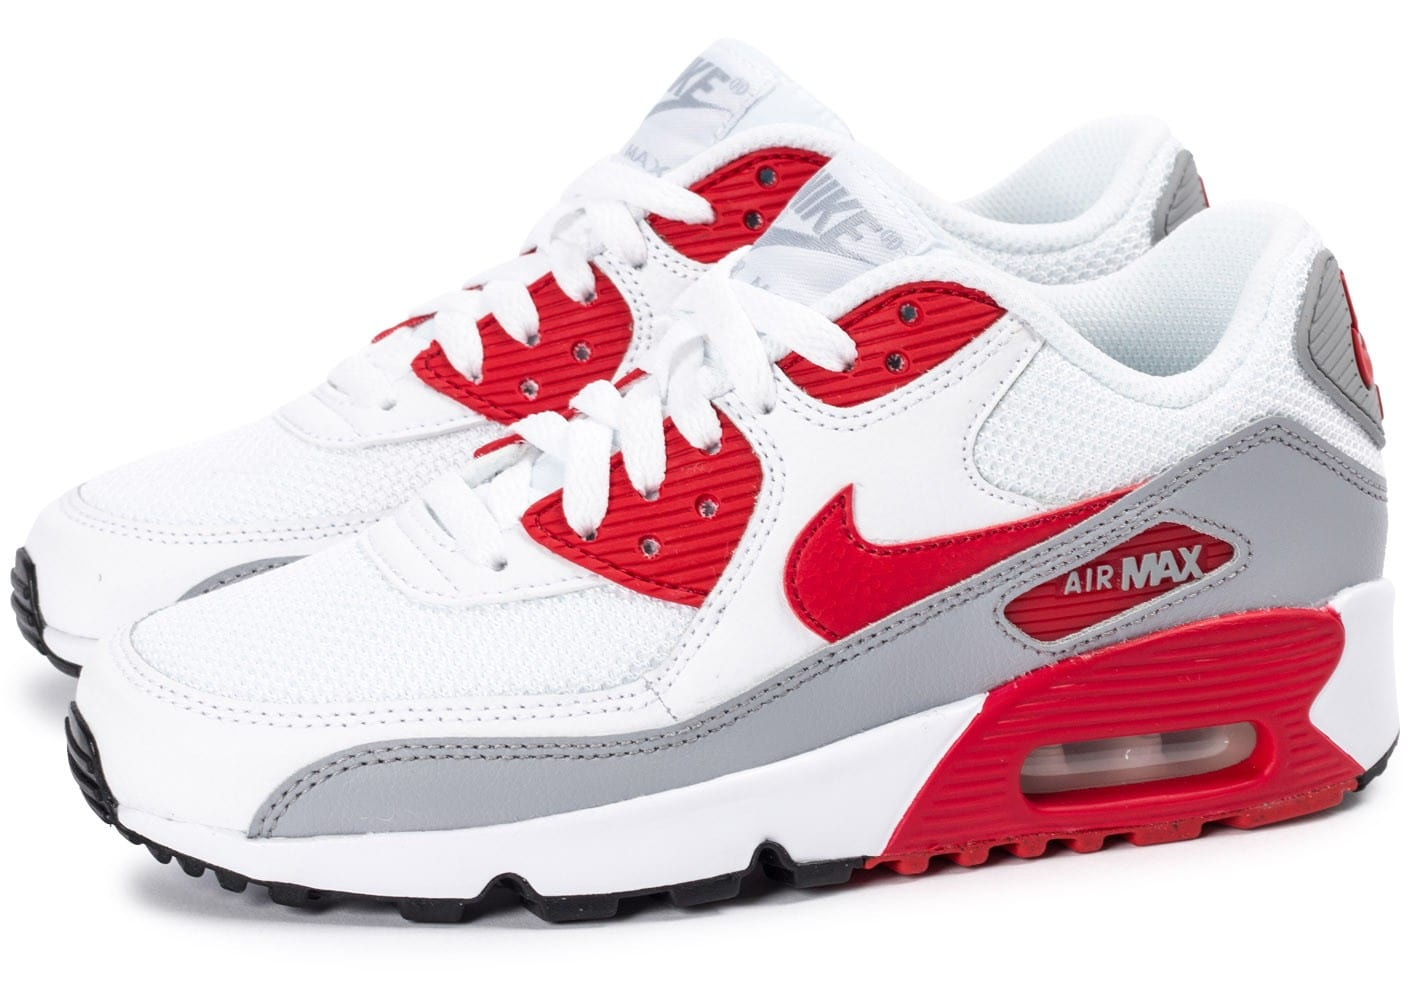 90 Chaussures Et Rouge Junior Blanche Max Mesh Air Nike GSVpUMqz